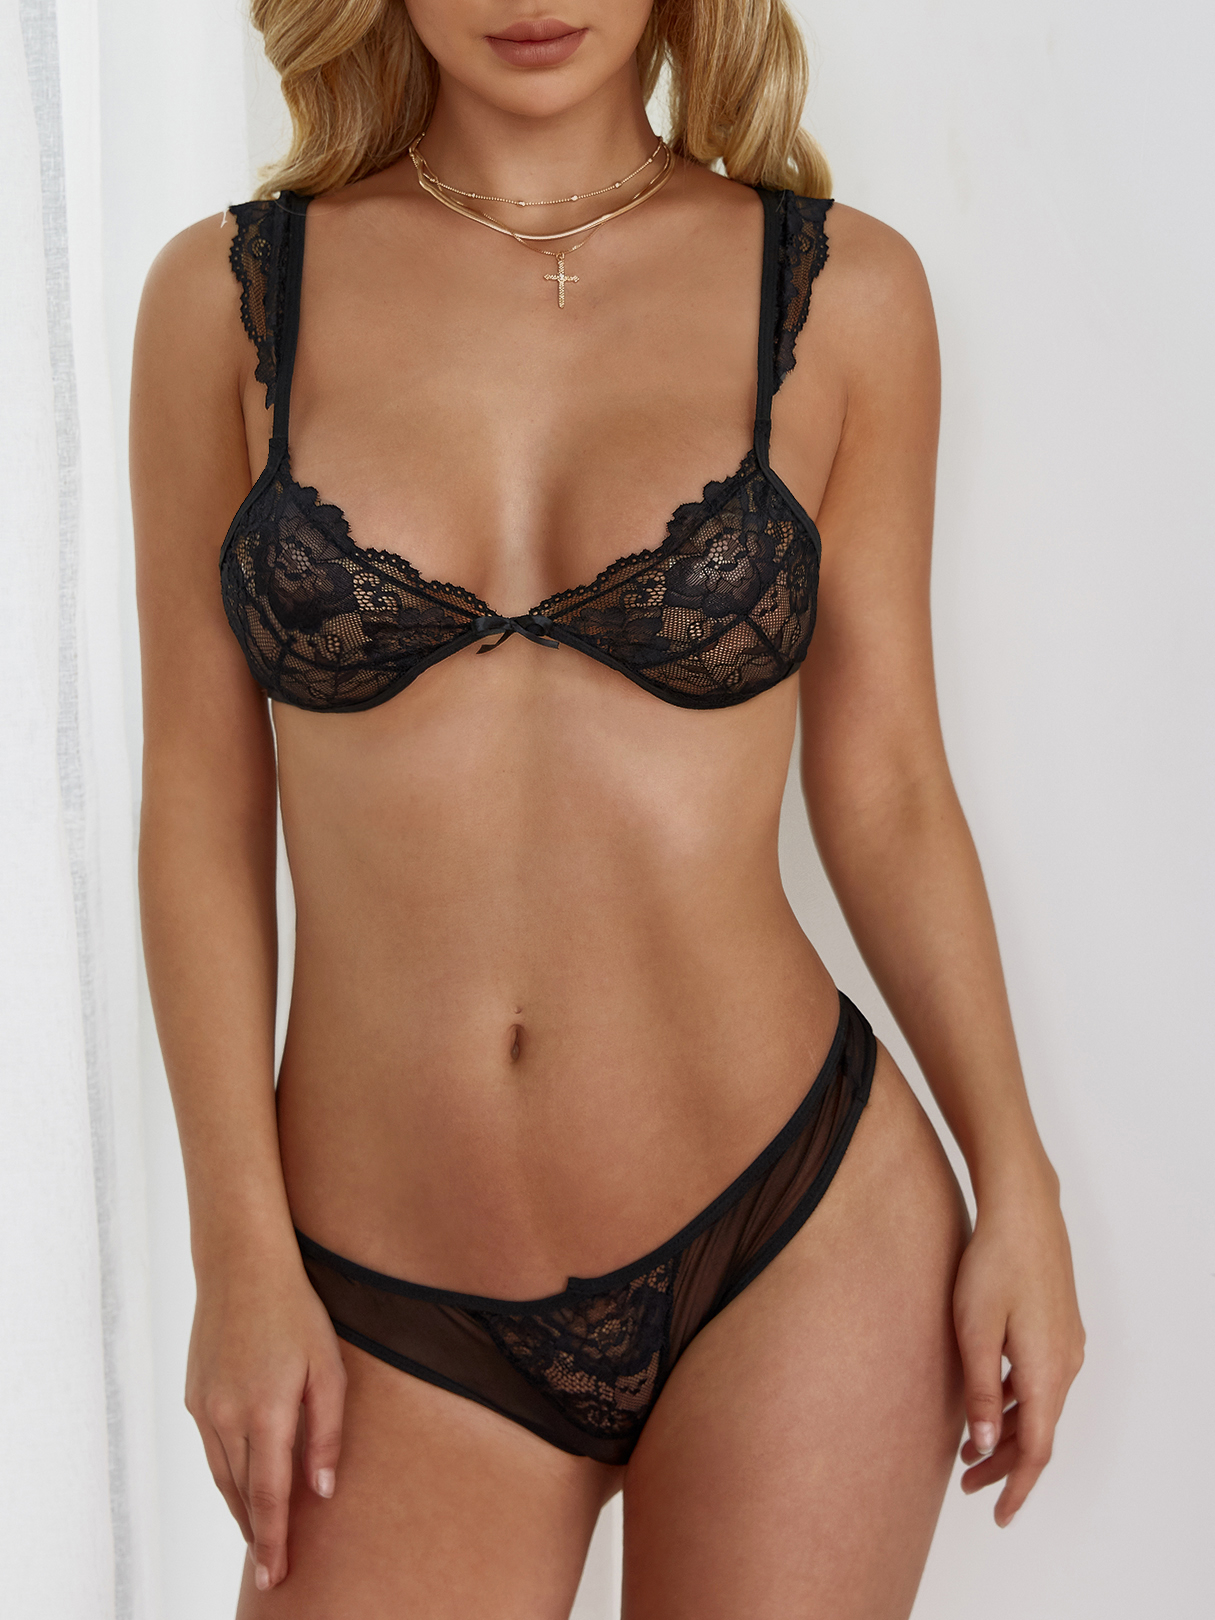 Sexy Black Lace Detail Lingerie Sets sexy black lace lingerie set with no falsies